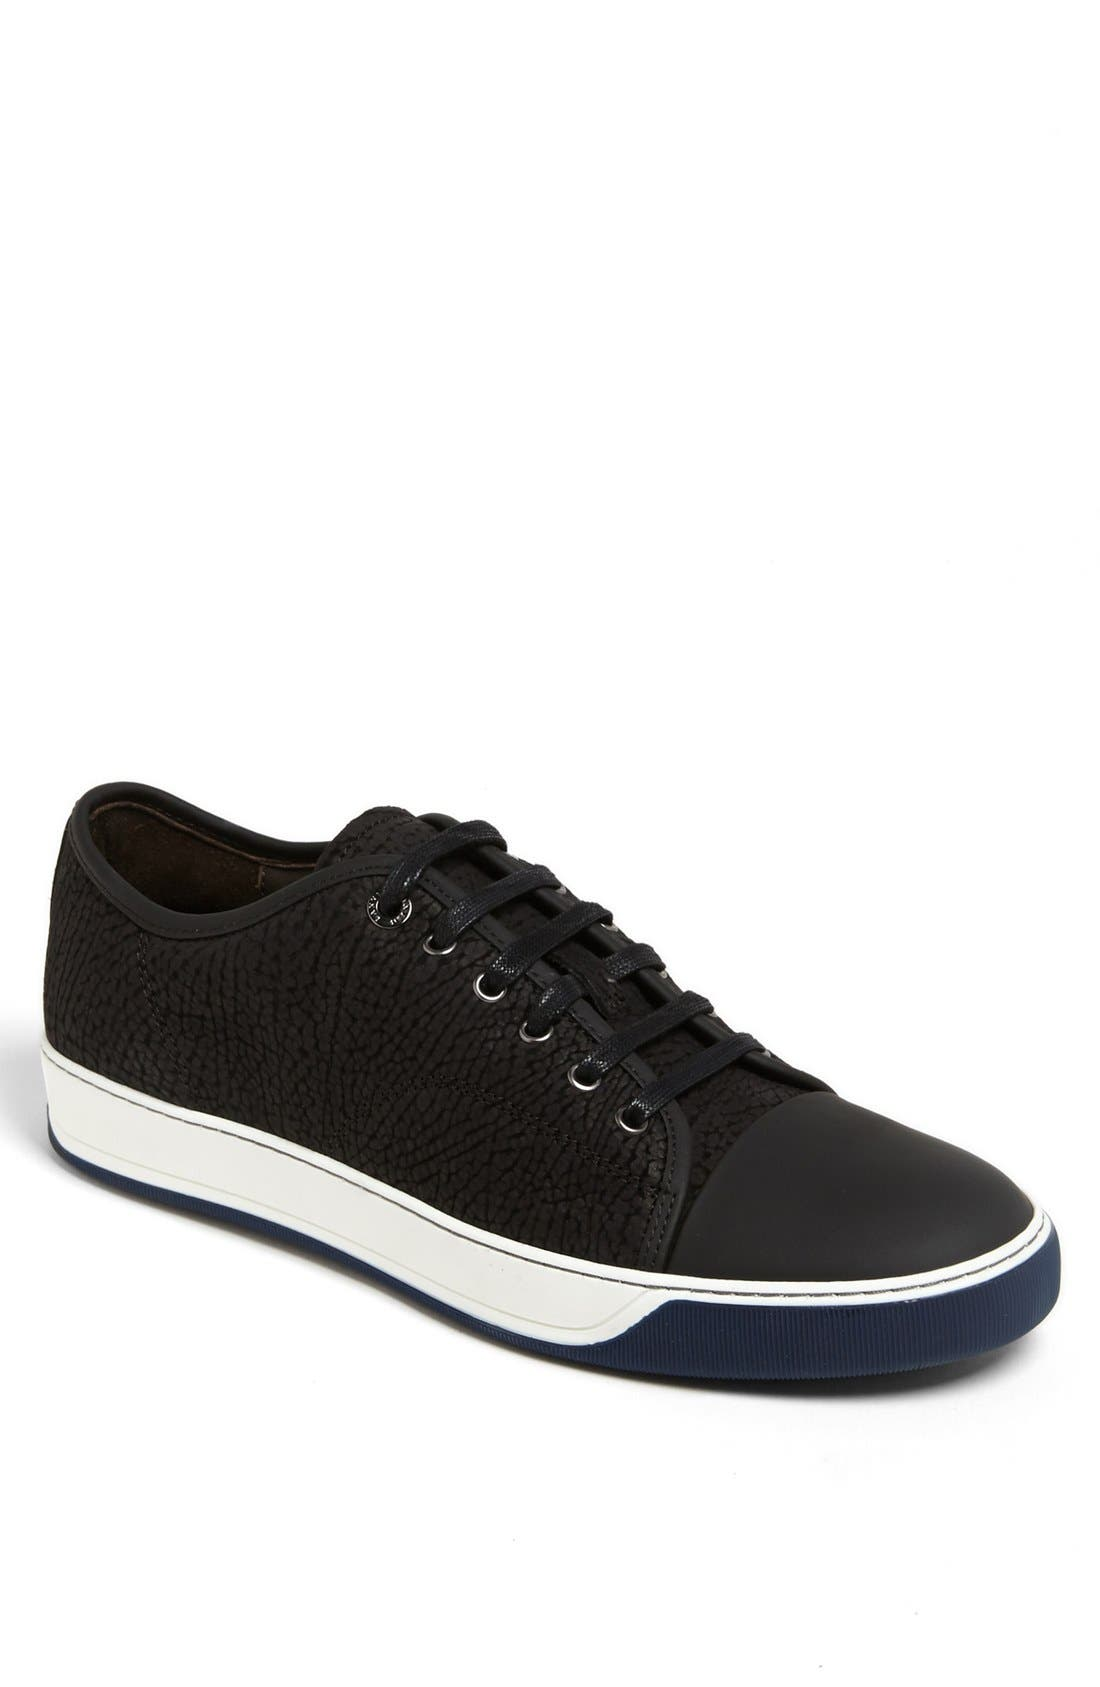 Alternate Image 1 Selected - Lanvin Low Top Sneaker